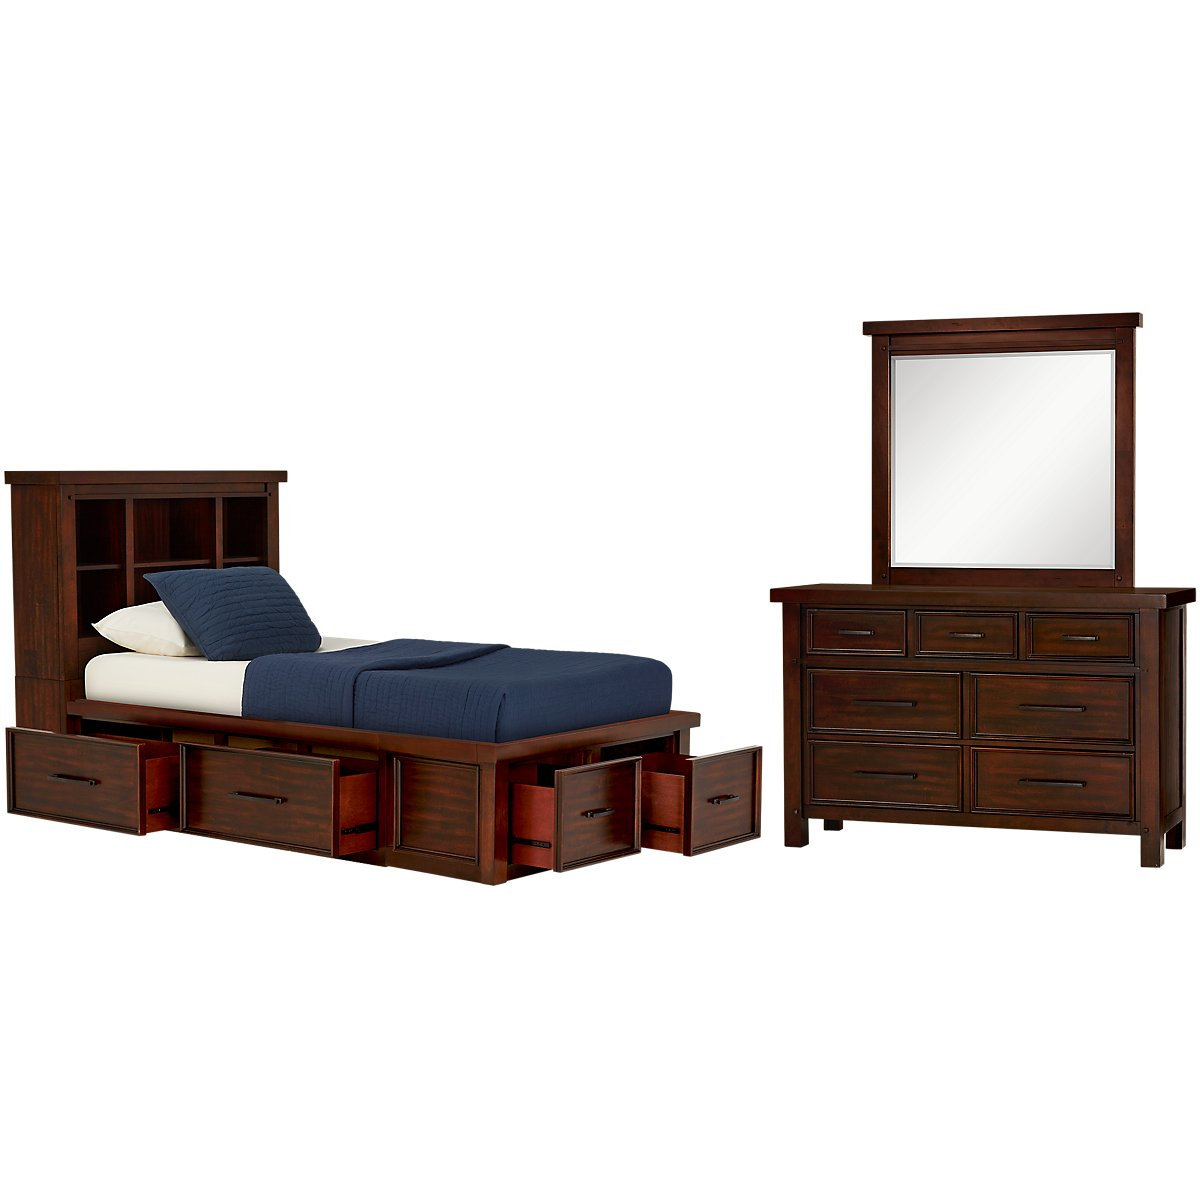 Napa Dark Tone Four-Drawer Bookcase Storage Bedroom